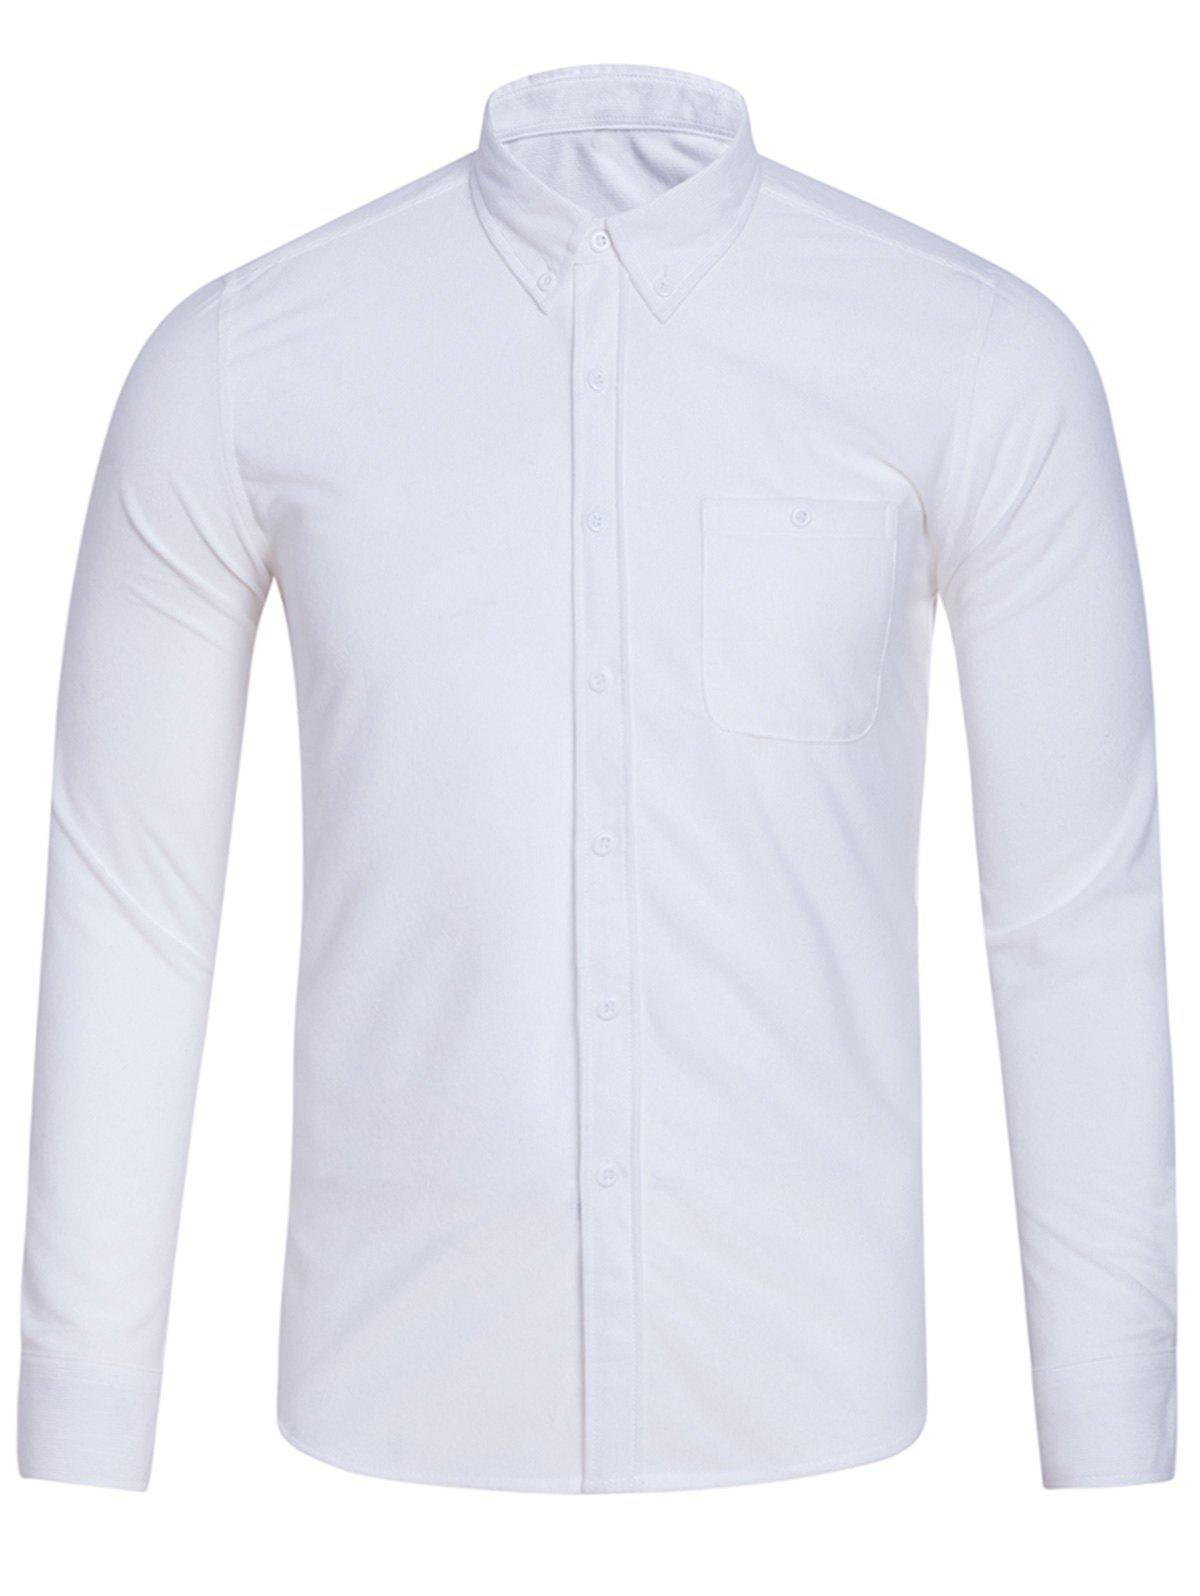 Turndown Collar Pocket Corduroy Shirt - WHITE 5XL